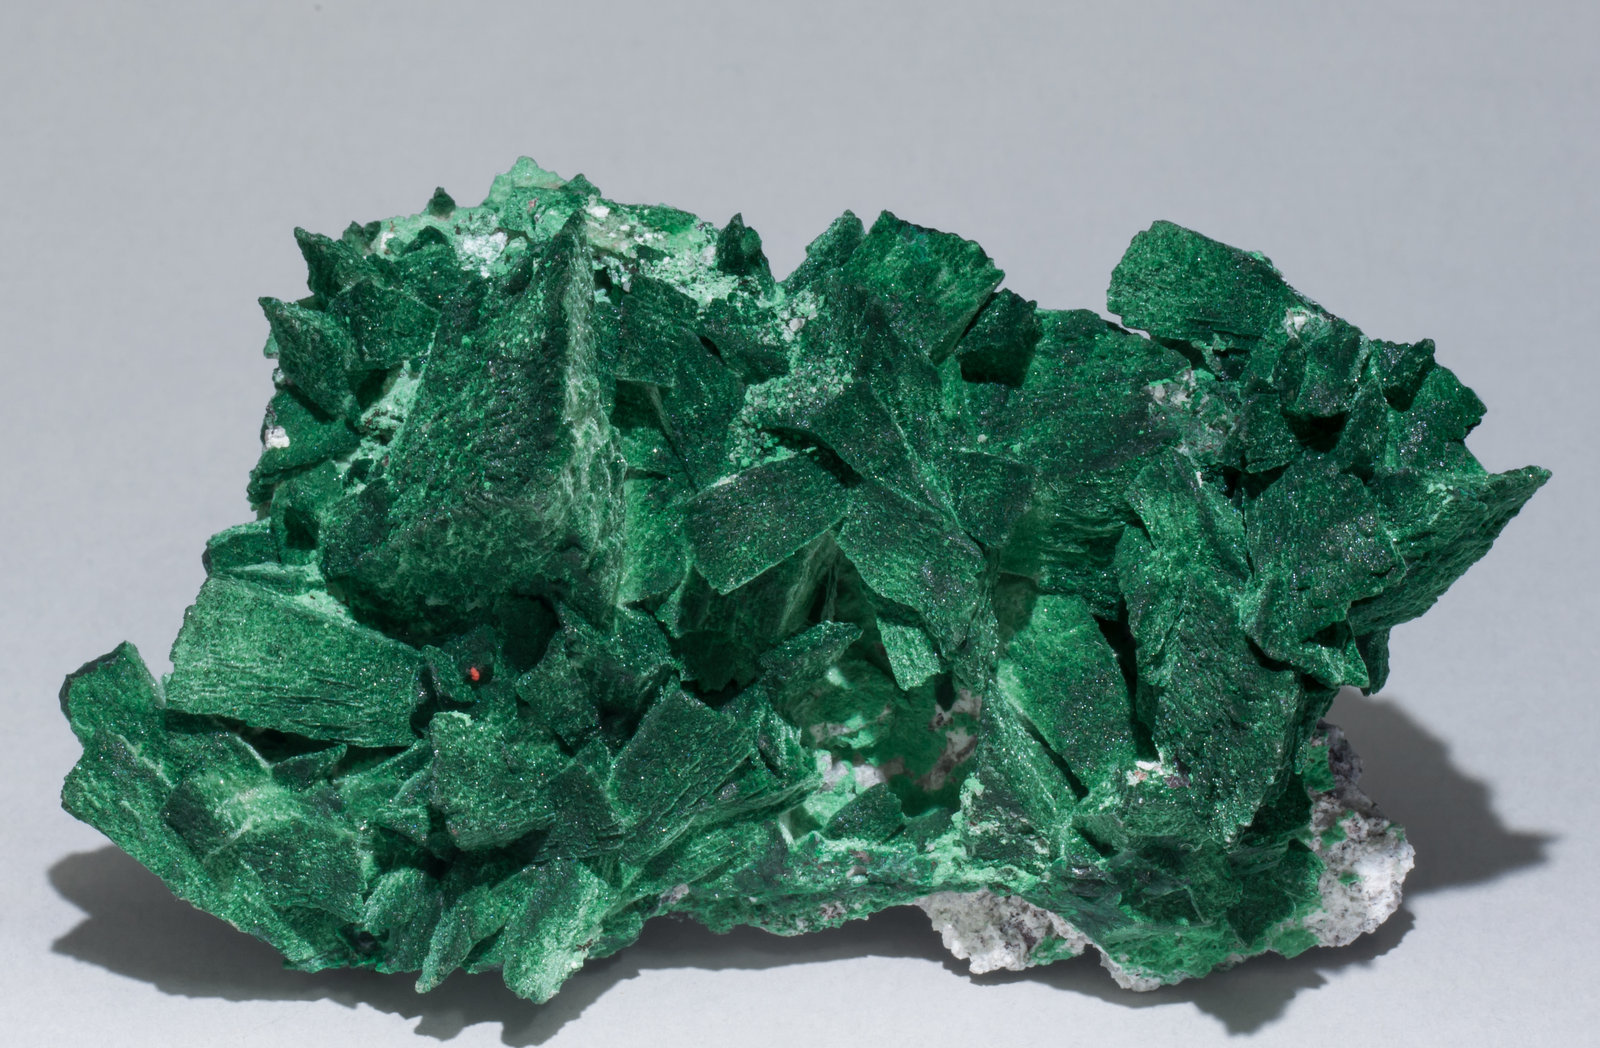 specimens/s_imagesAB3/Malachite-TN78AB3f.jpg